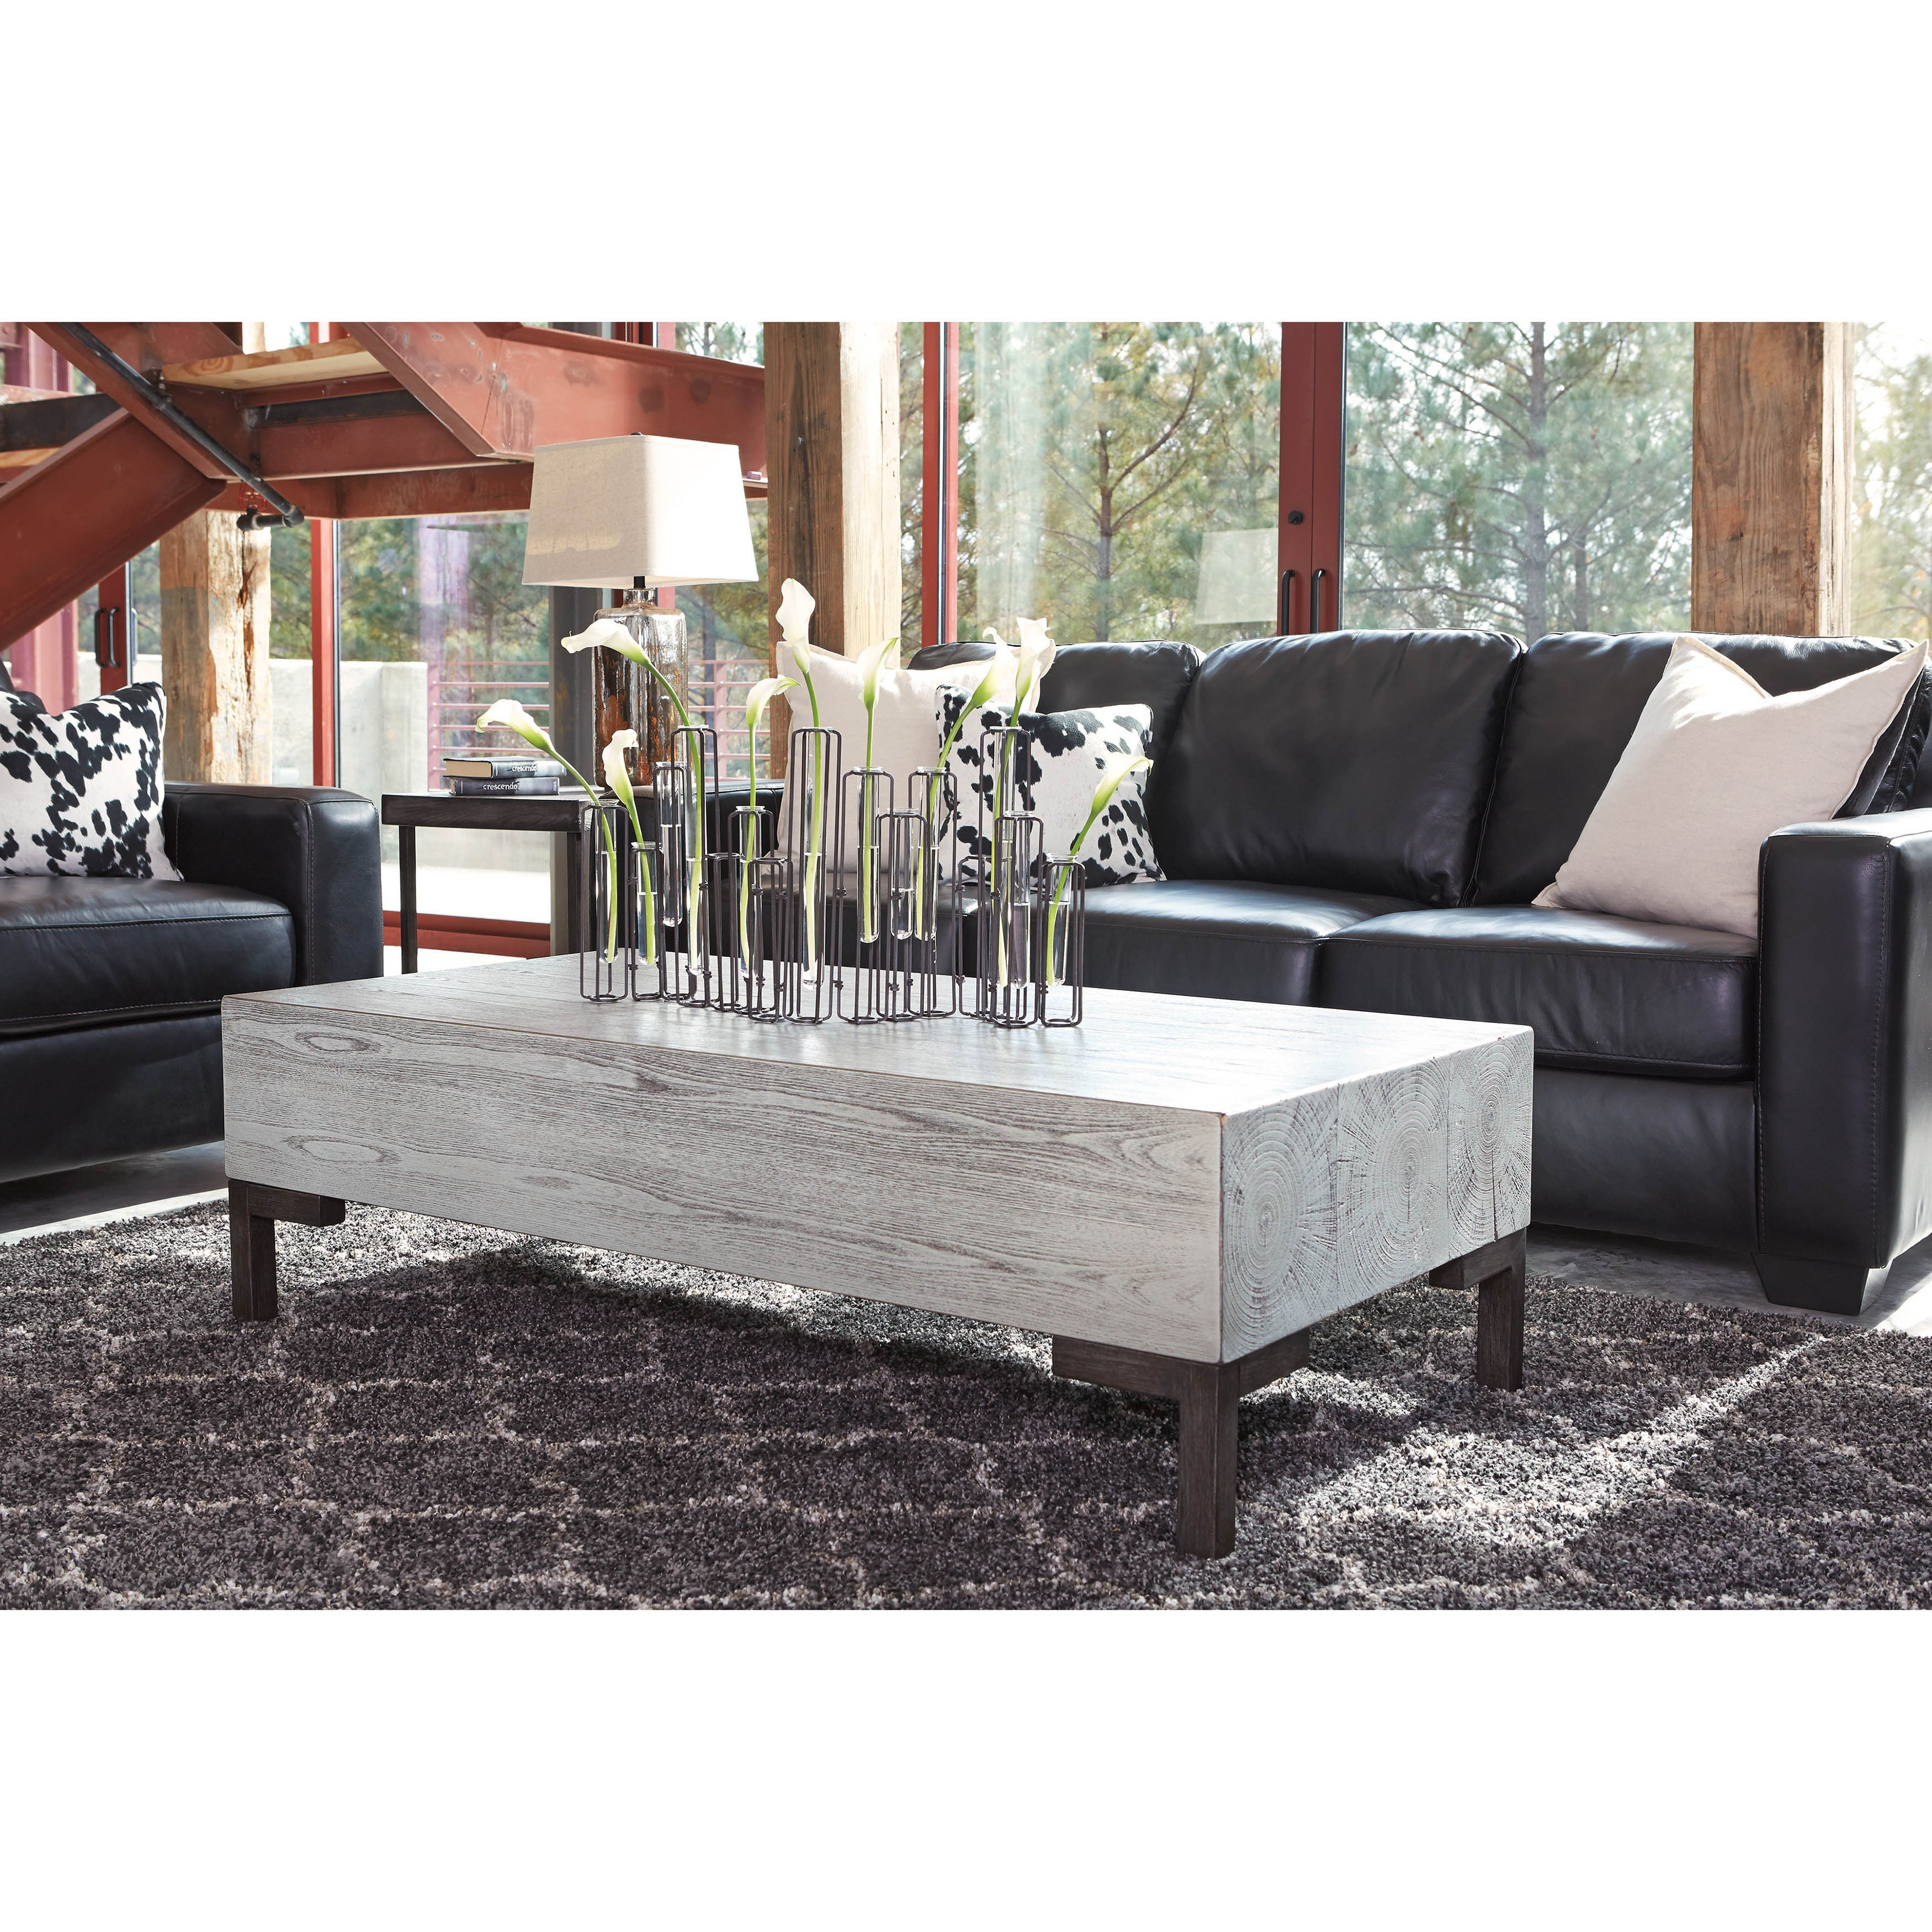 Shop signature design by ashley rasmin silver finish rectangular cocktail table free shipping today overstock com 10758312